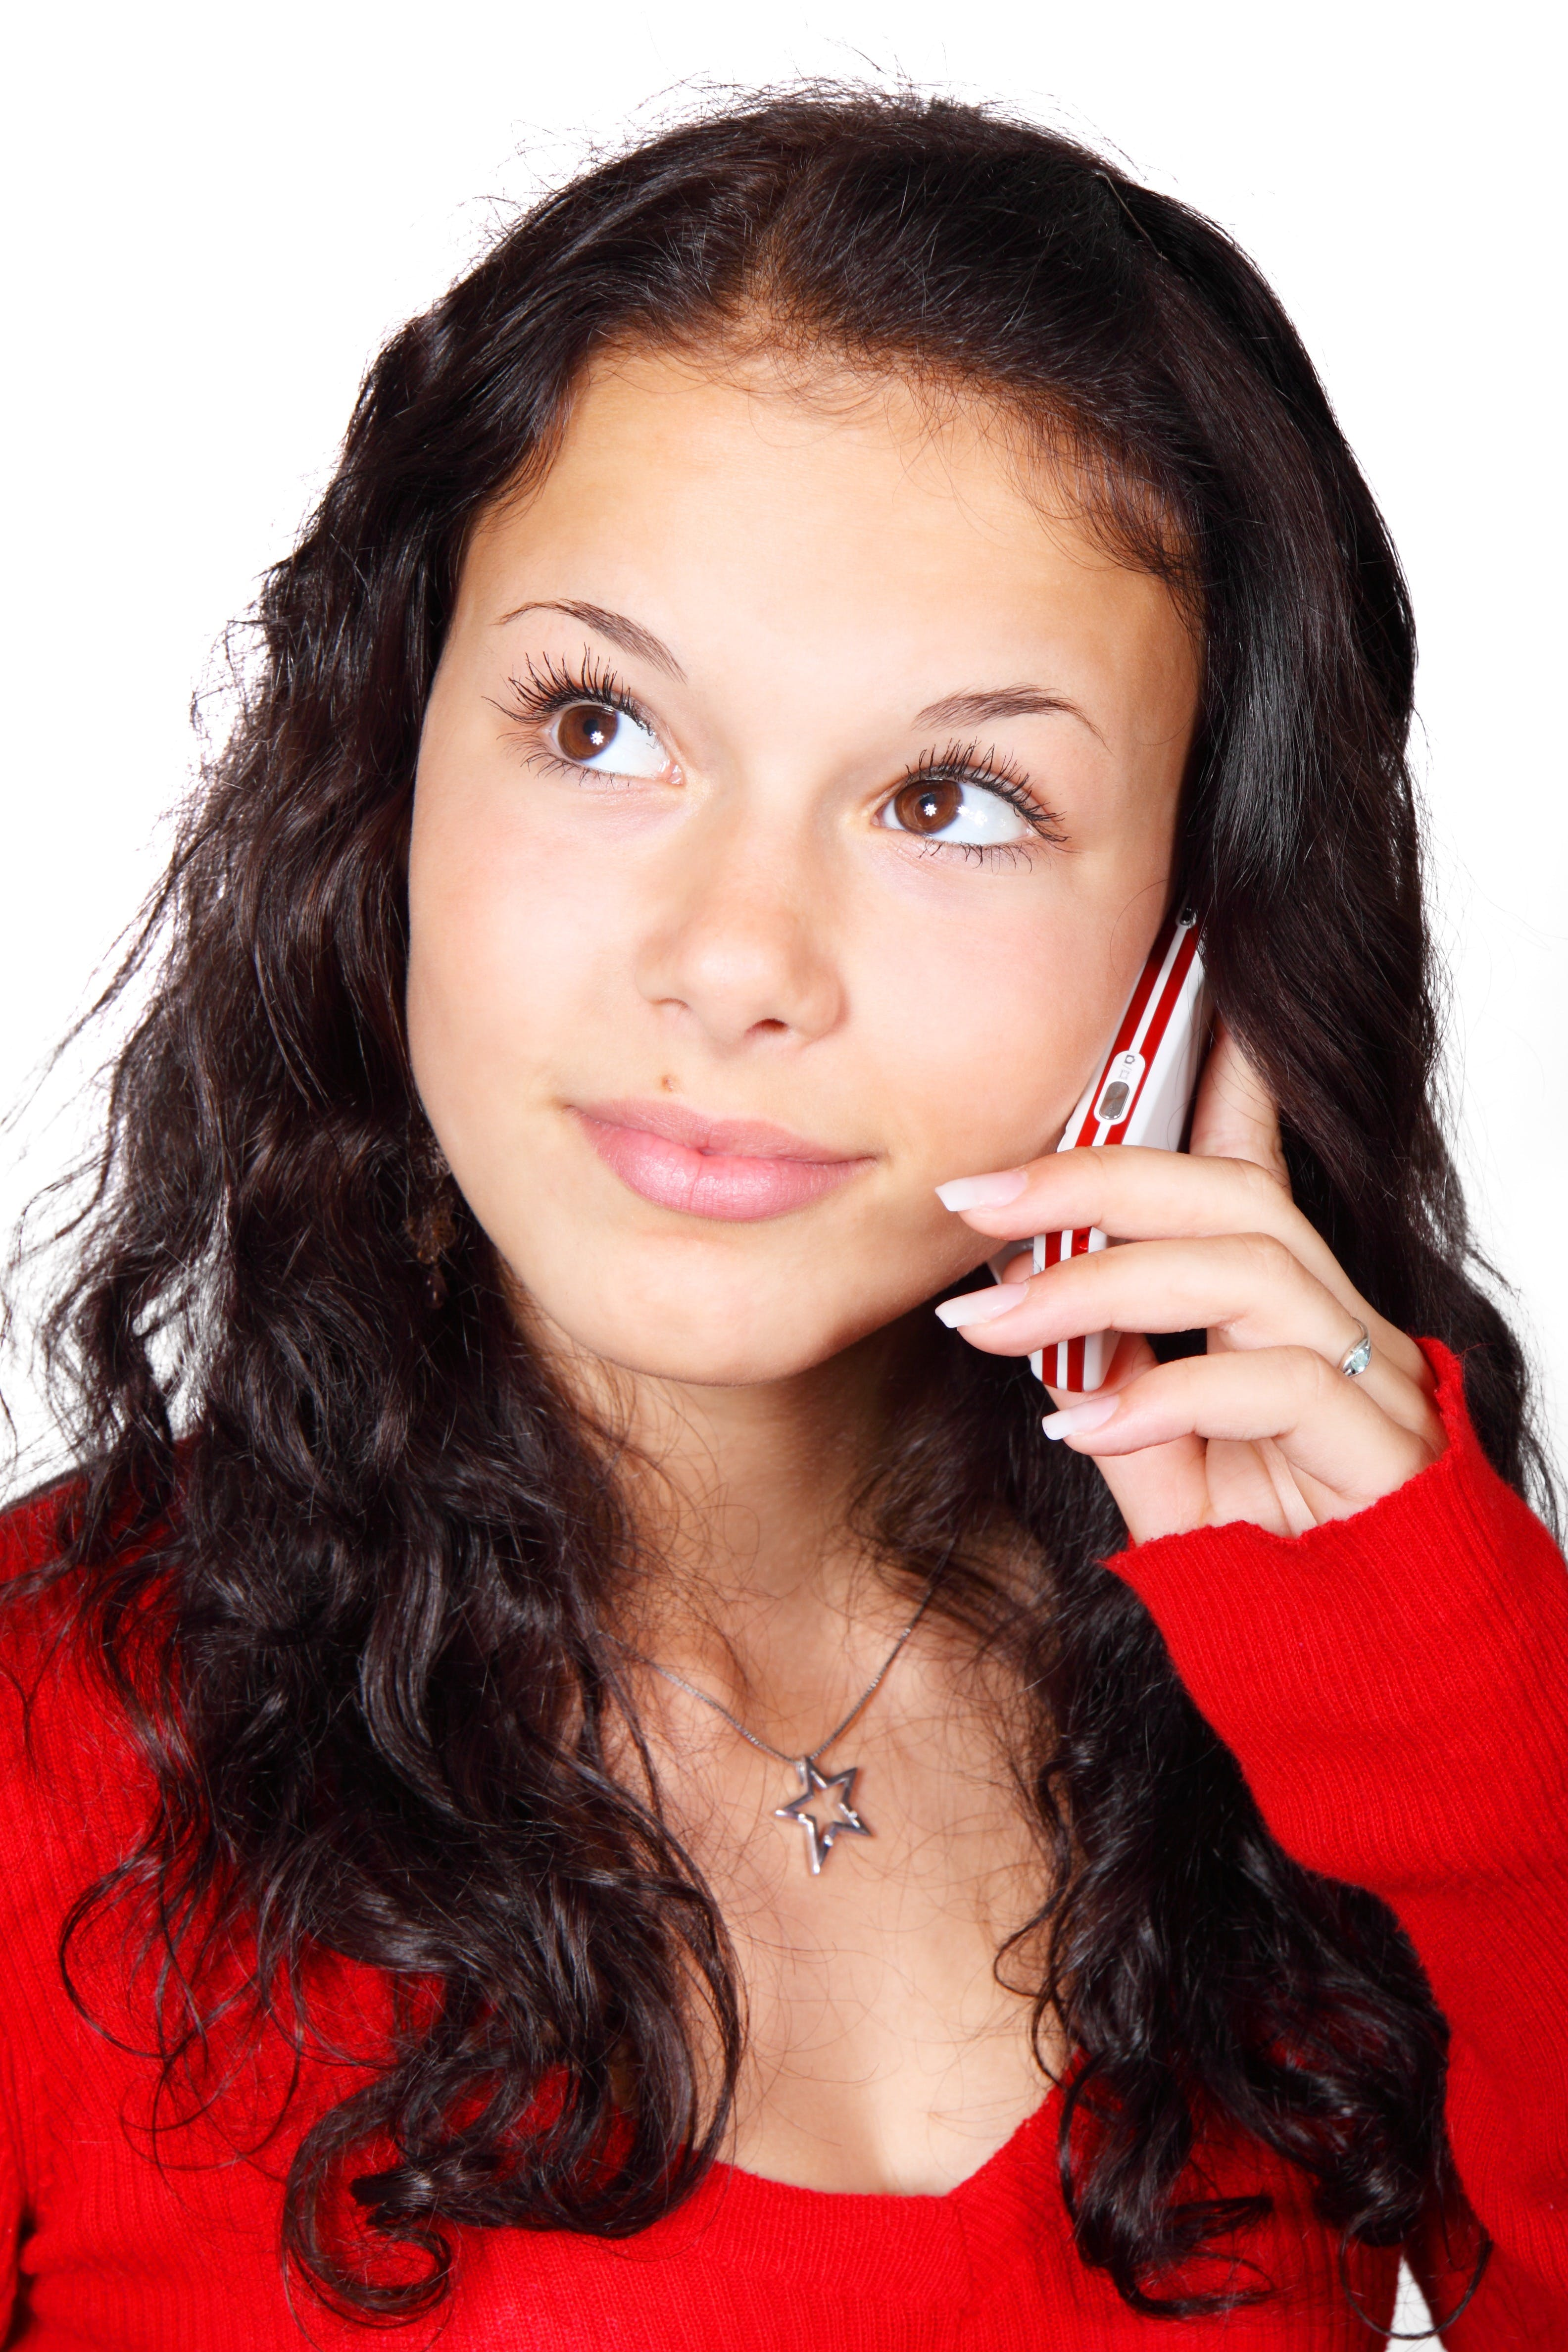 Woman Using Smartphone Wearing Red Long-sleeved Shirt